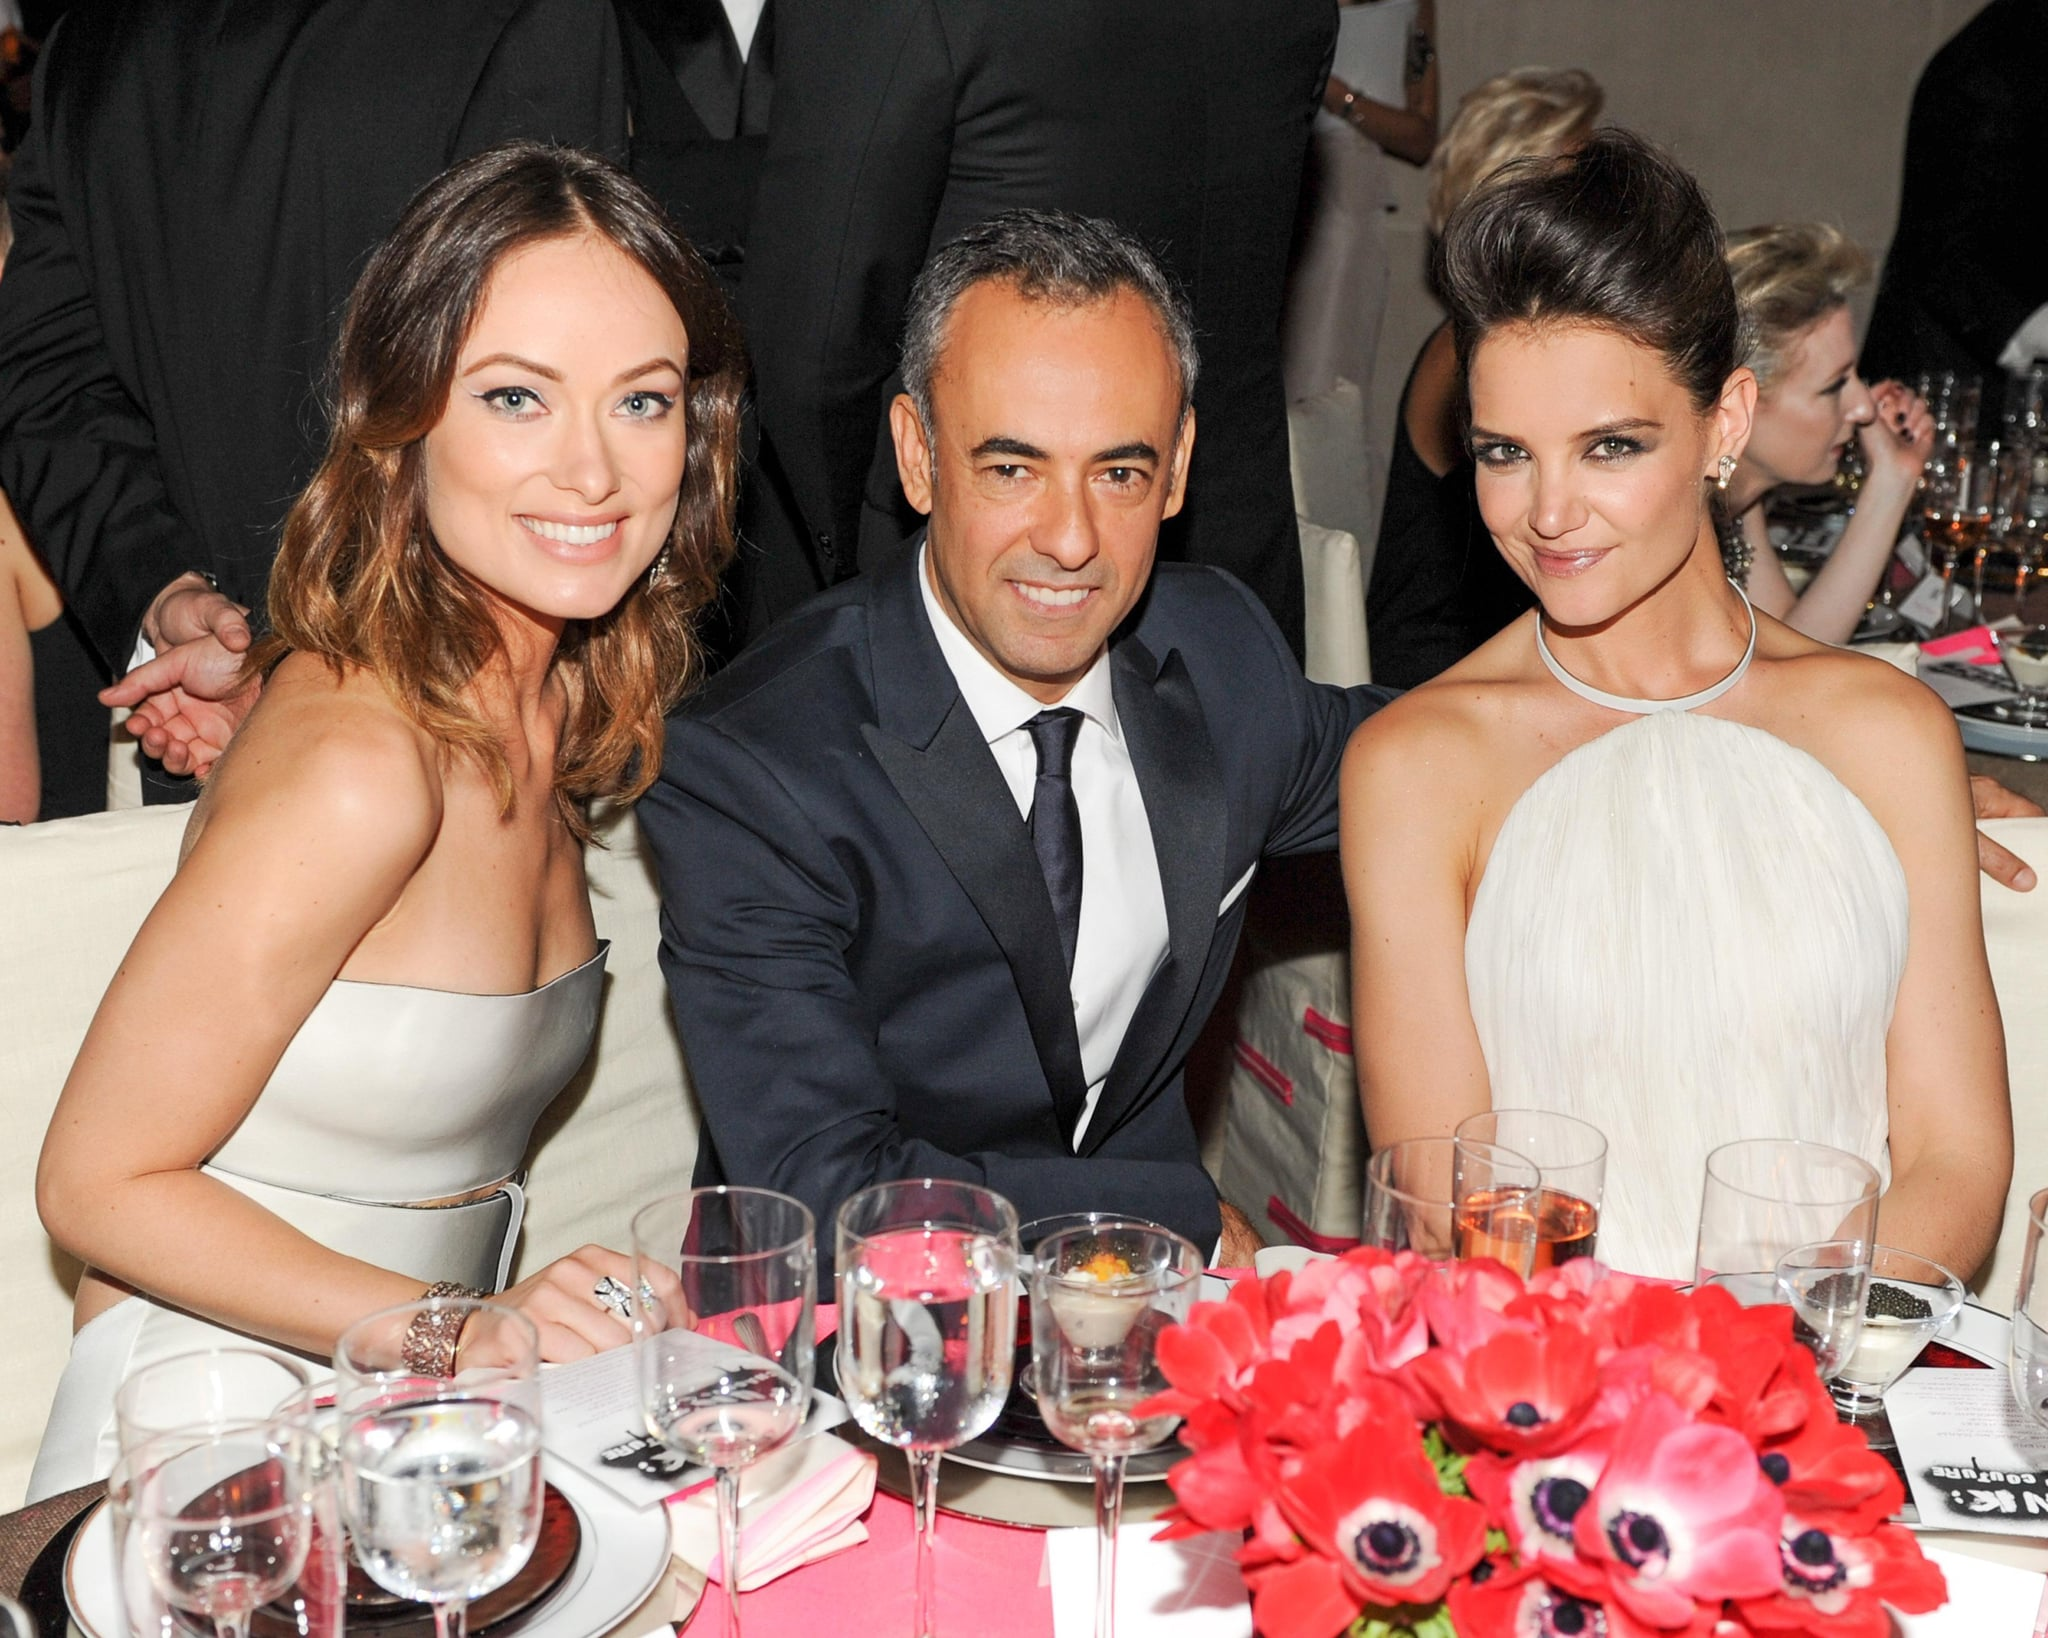 Designer Francisco Costa was sandwiched between Olivia Wilde and Katie Holmes at the Met Gala dinner.  Source: Billy Farrell/BFANYC.com